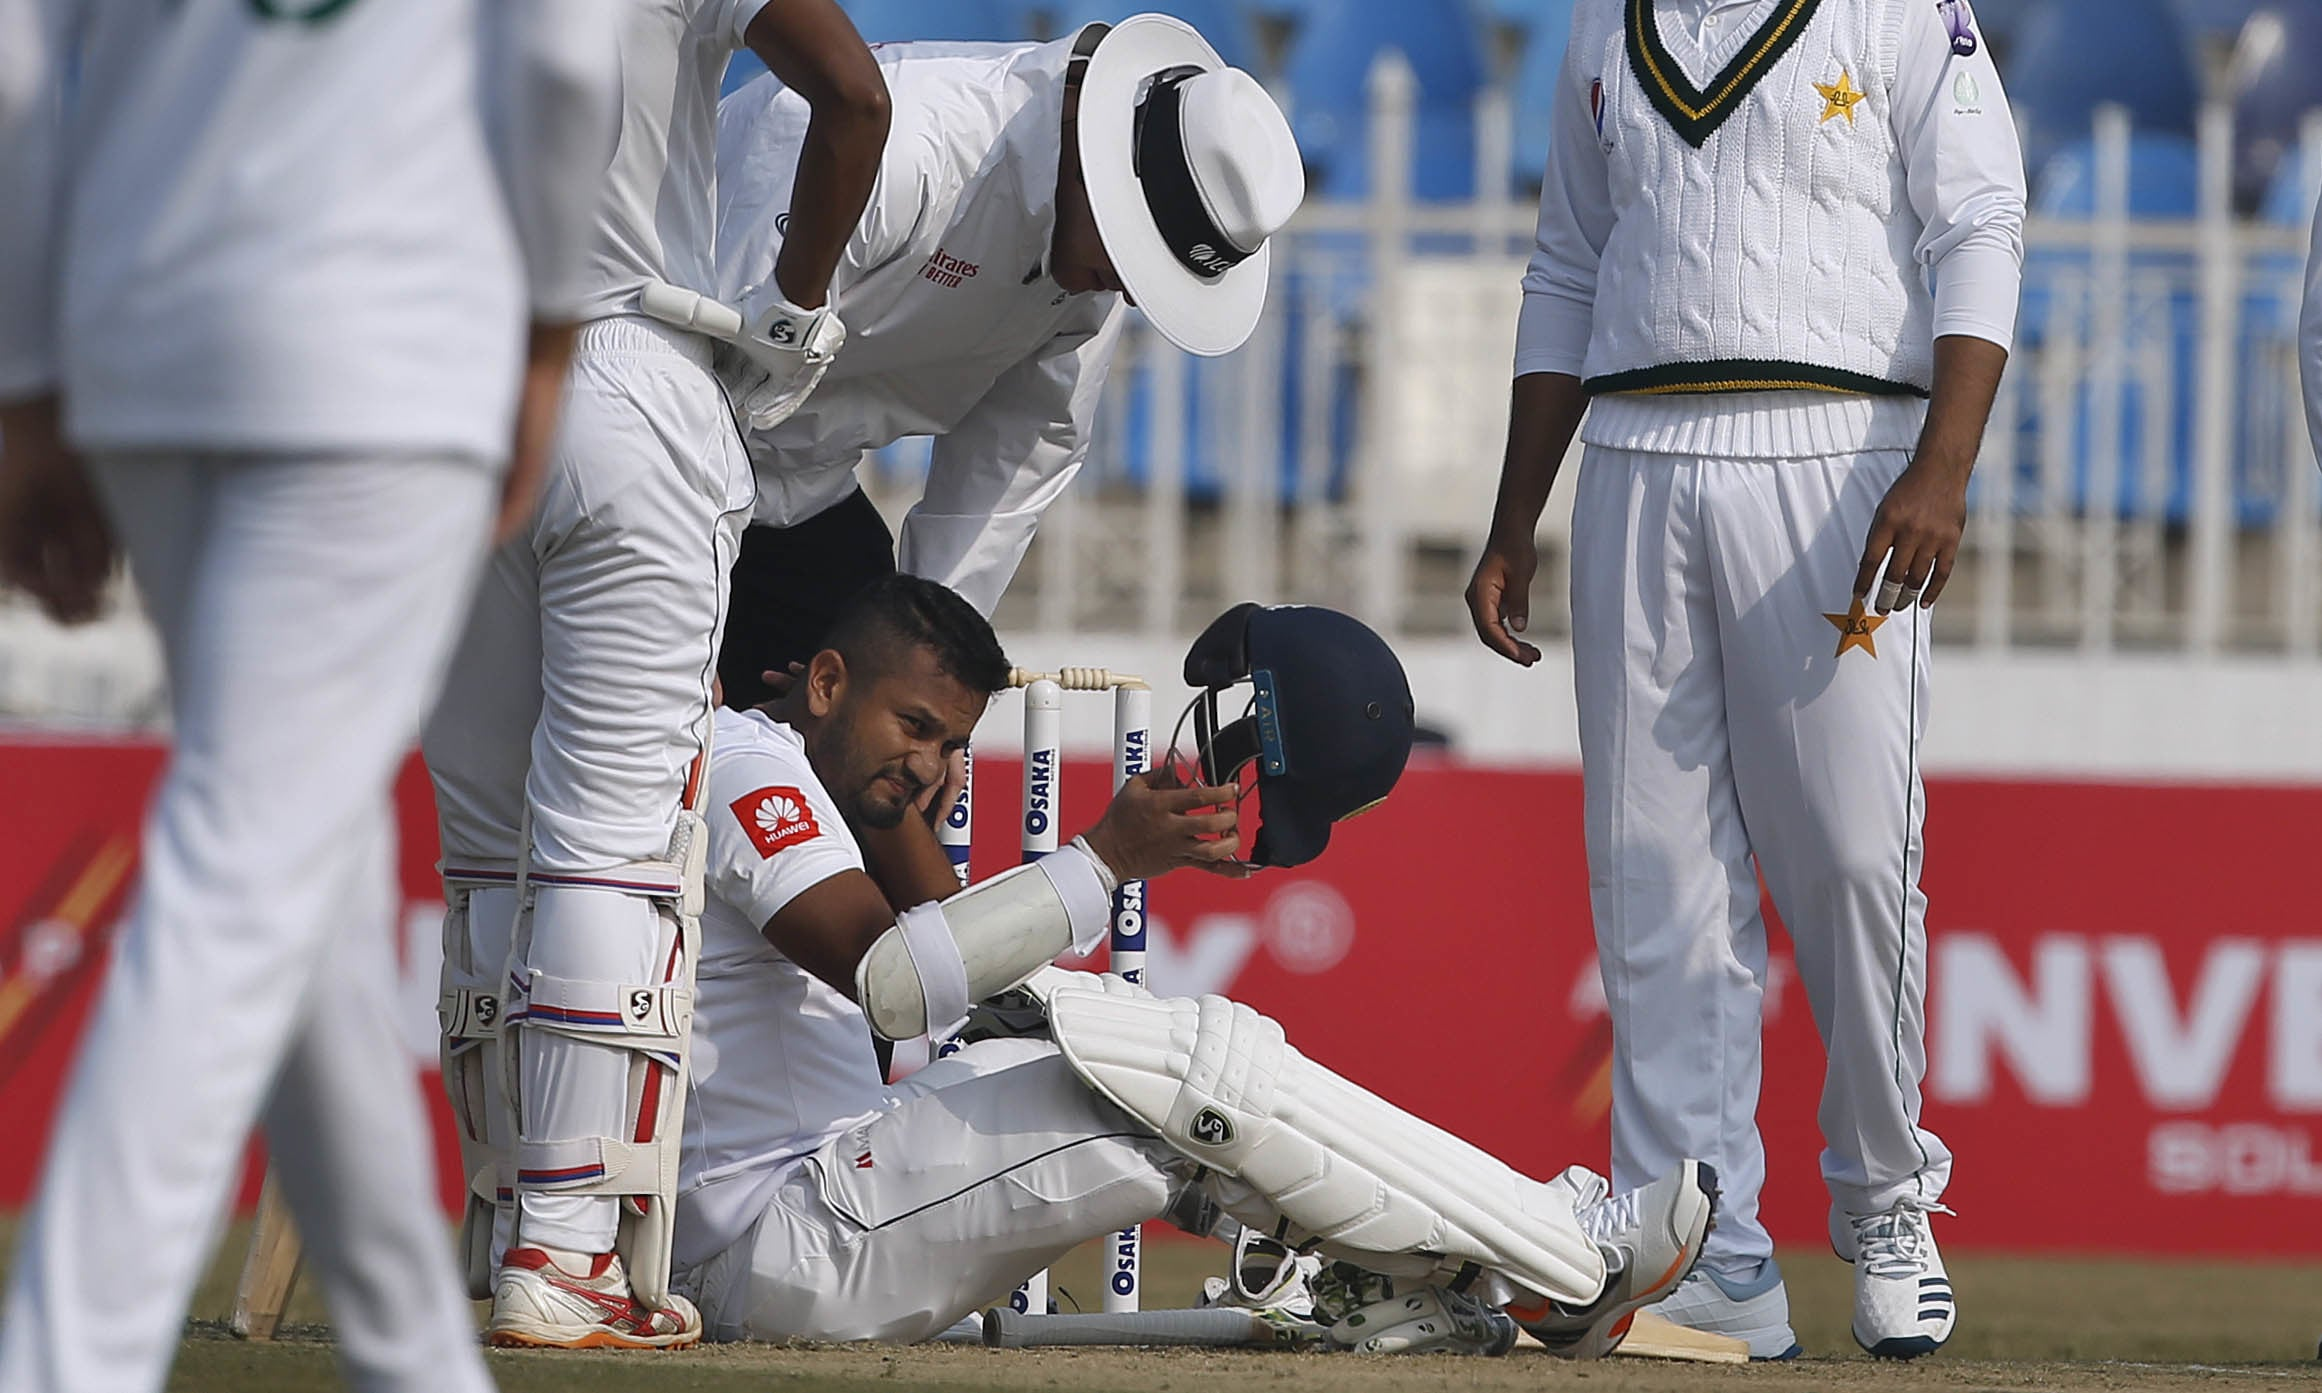 Sri Lankan batsman Dimuth Karunaratne falls down after a delivery of Pakistani pacer Naseem Shah hitting his neck during the first Test match between Pakistan and Sri Lanka in Rawalpindi on Wednesday Dec 11. — AP